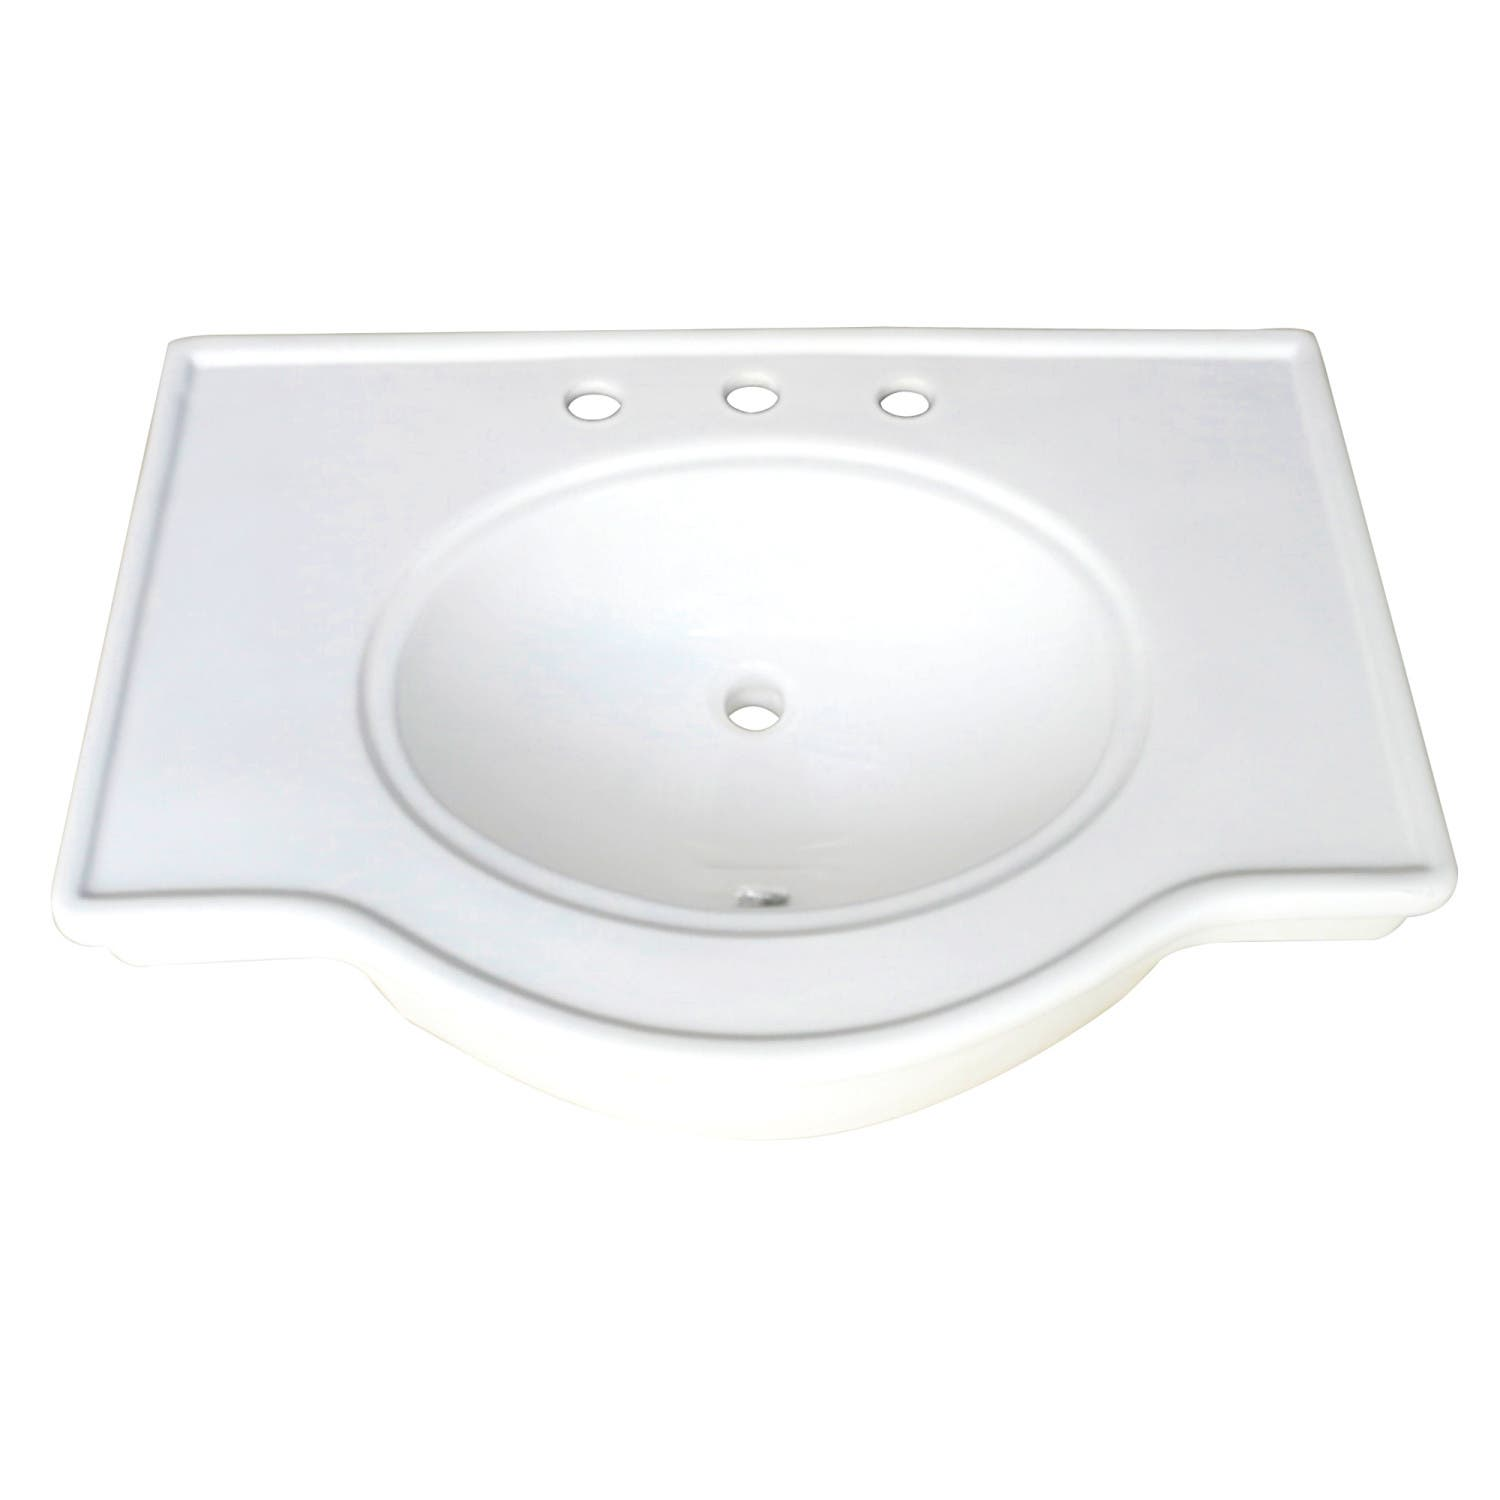 "Fauceture VPB1318B Templeton 31""x22"" Ceramic Console Sink Basin, White"